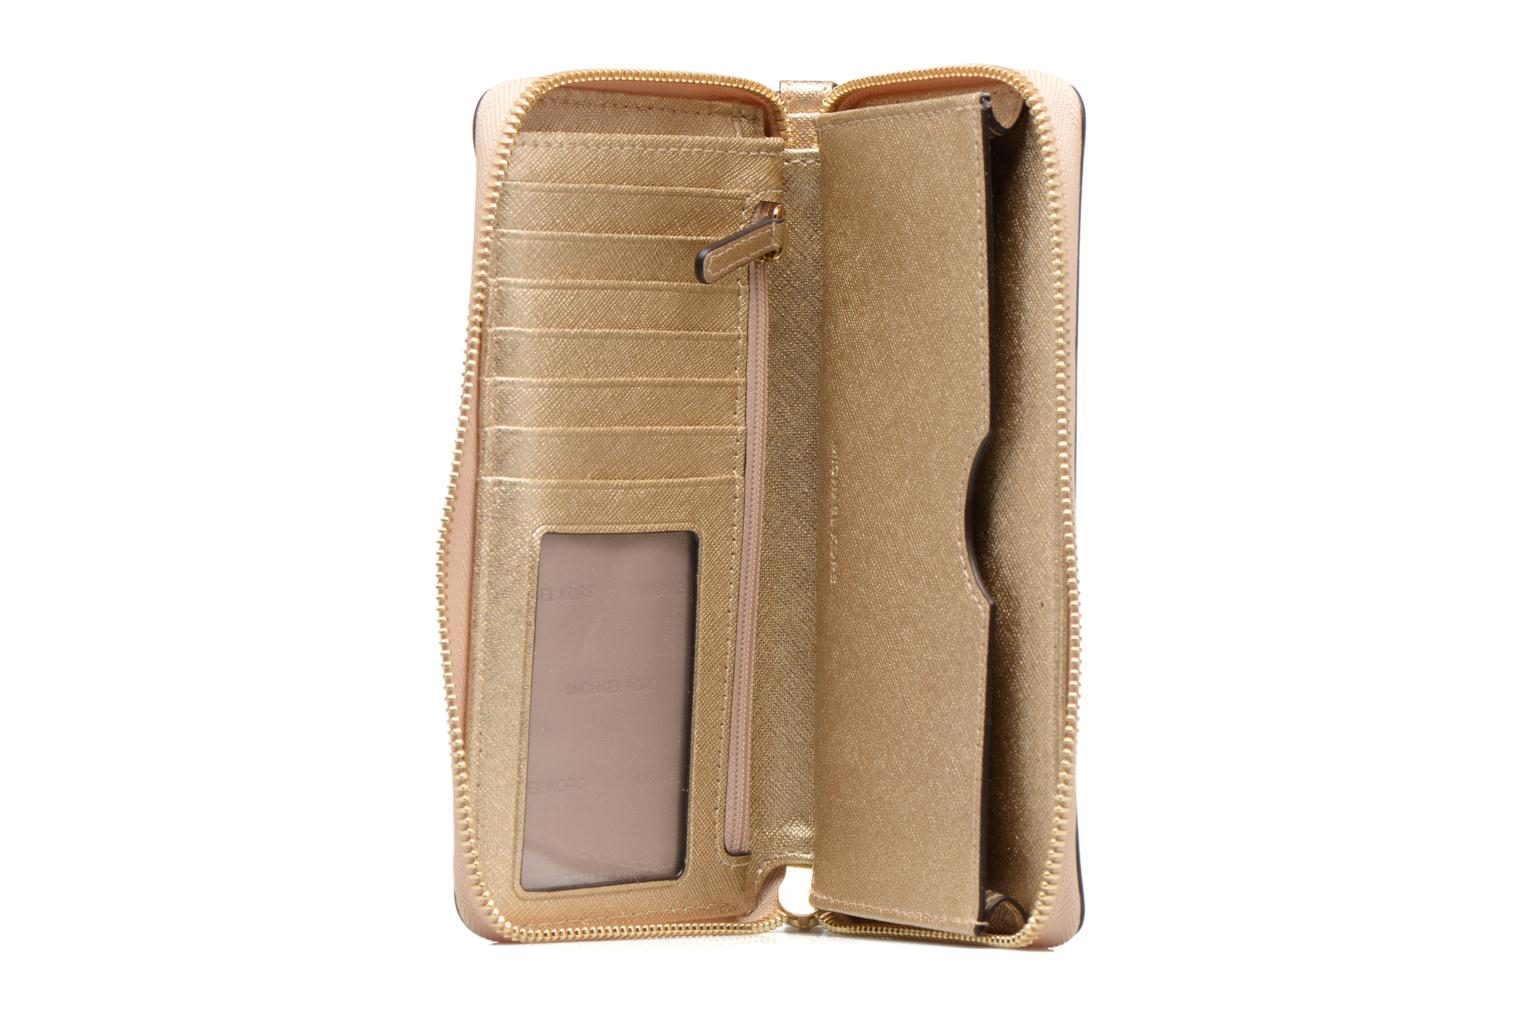 JET SET LG FLATPHONE CASE Pale Gold